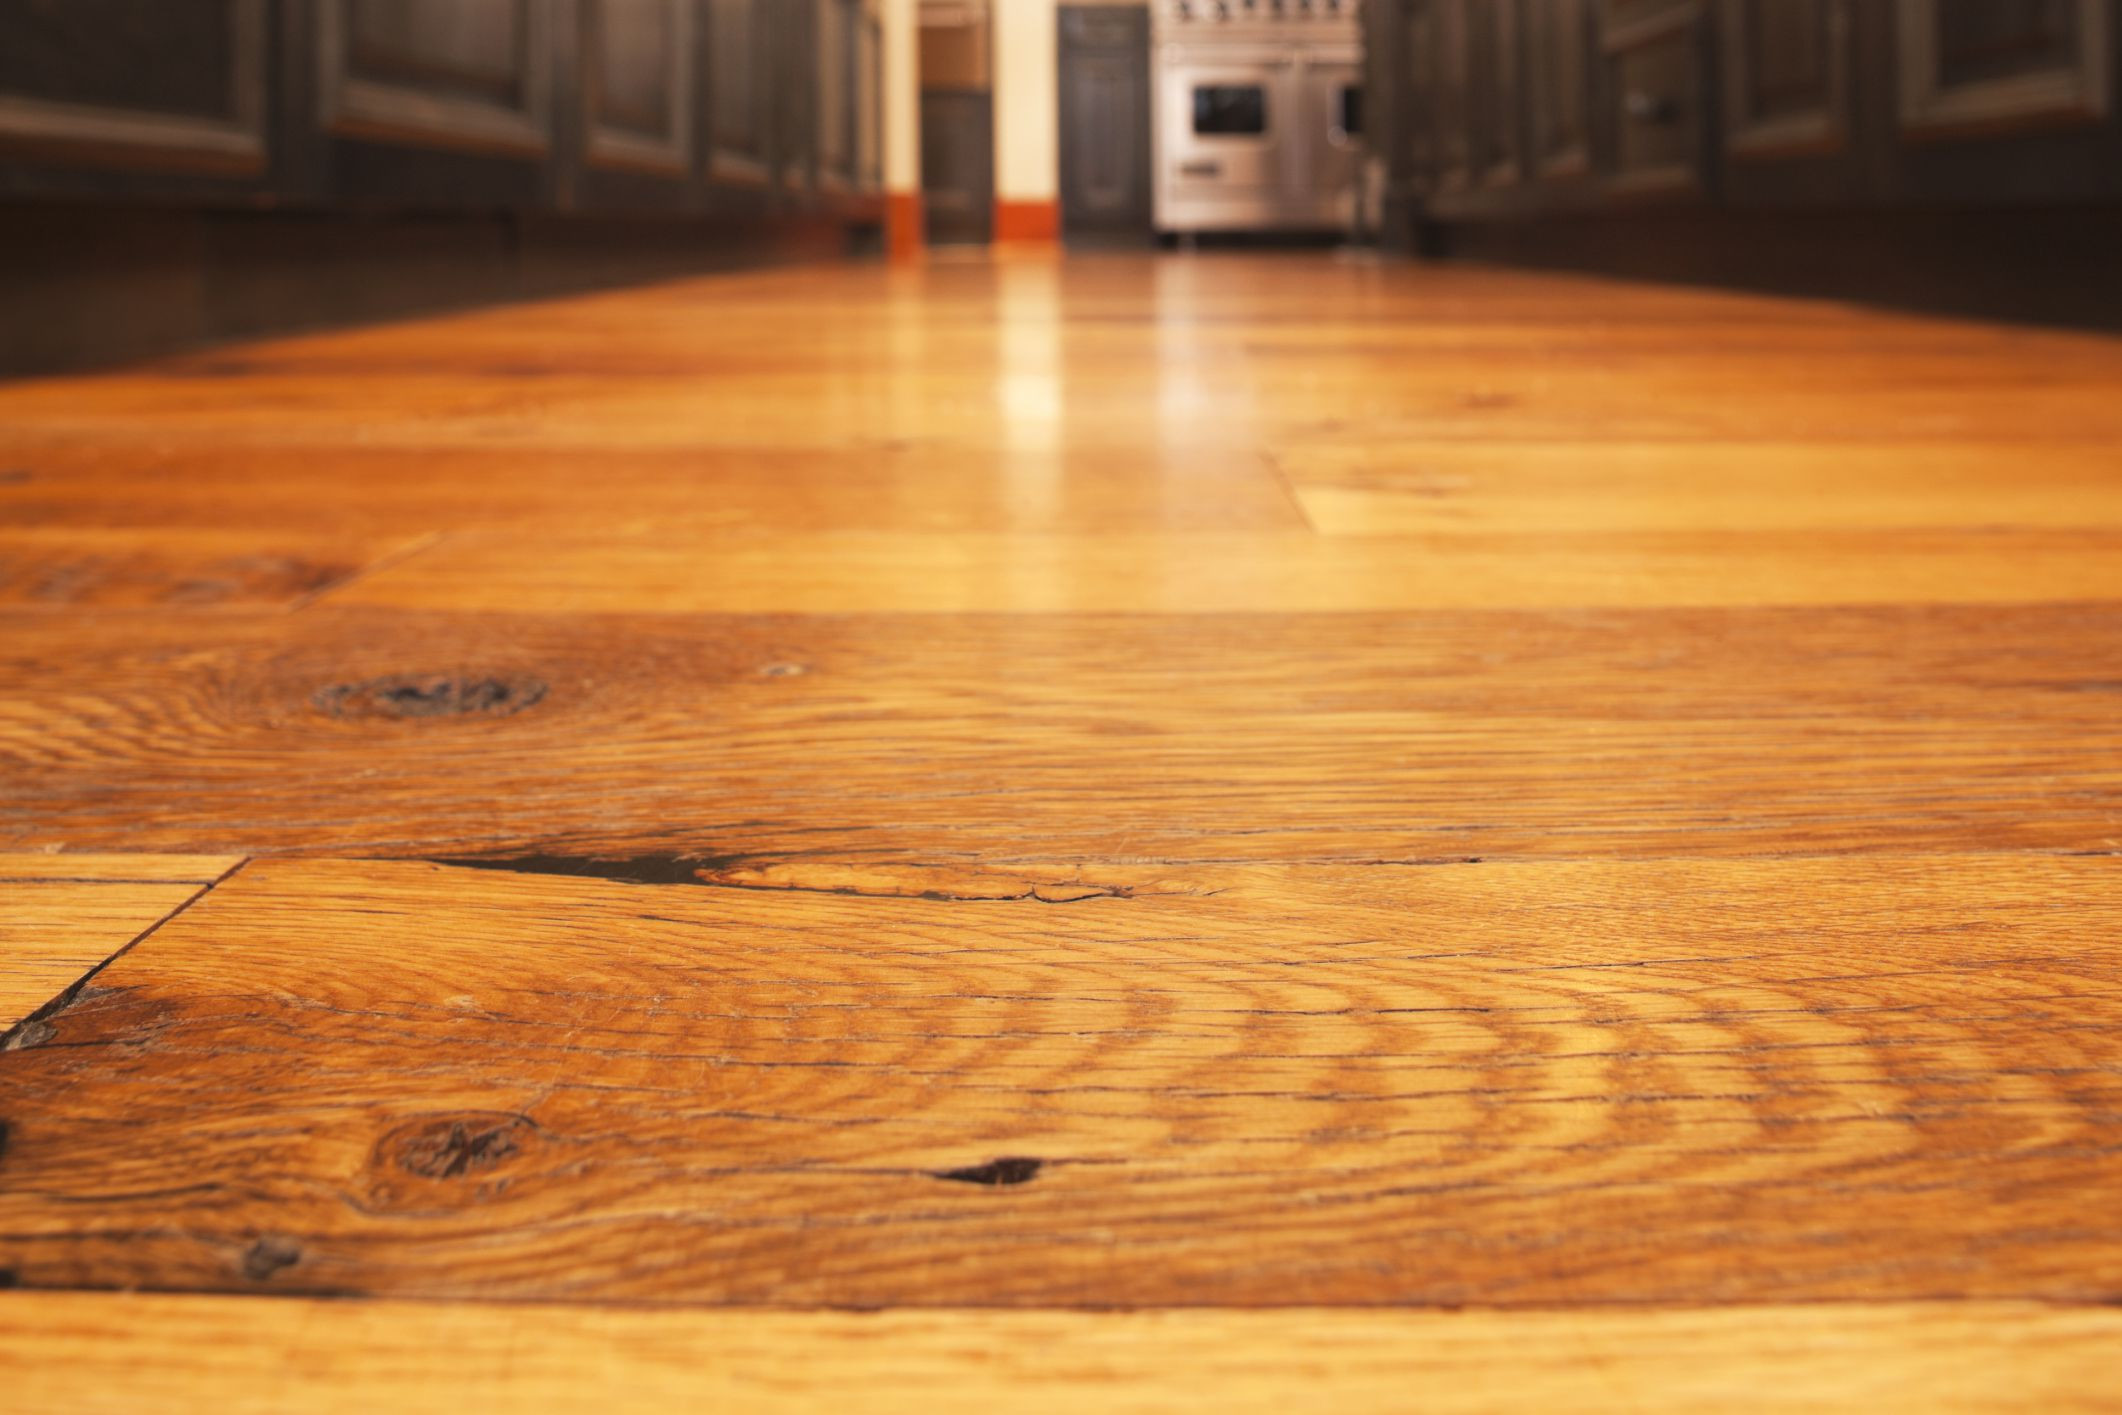 hardwood floor refinishing spokane of why a microbevel is on your flooring with regard to wood floor closeup microbevel 56a4a13f5f9b58b7d0d7e5f4